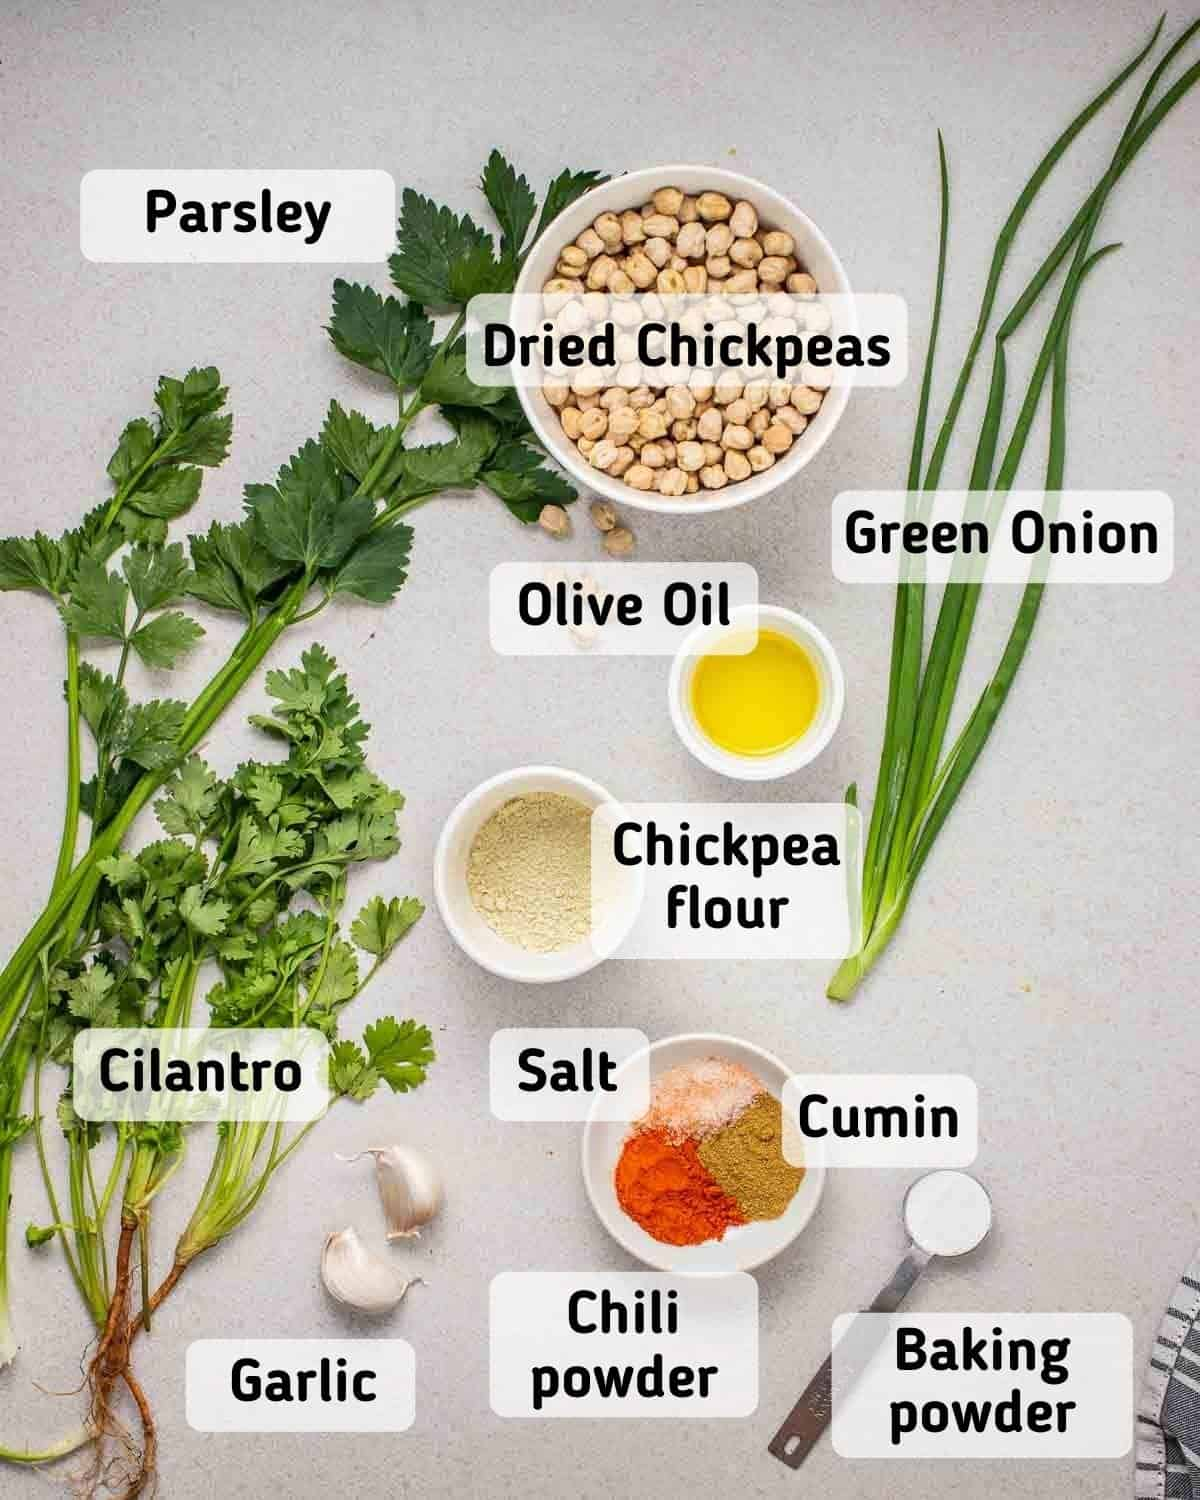 Ingredients needed for falafels like chickpeas olive oil, chickpea flour, baking powder, herbs and spices on grey background.